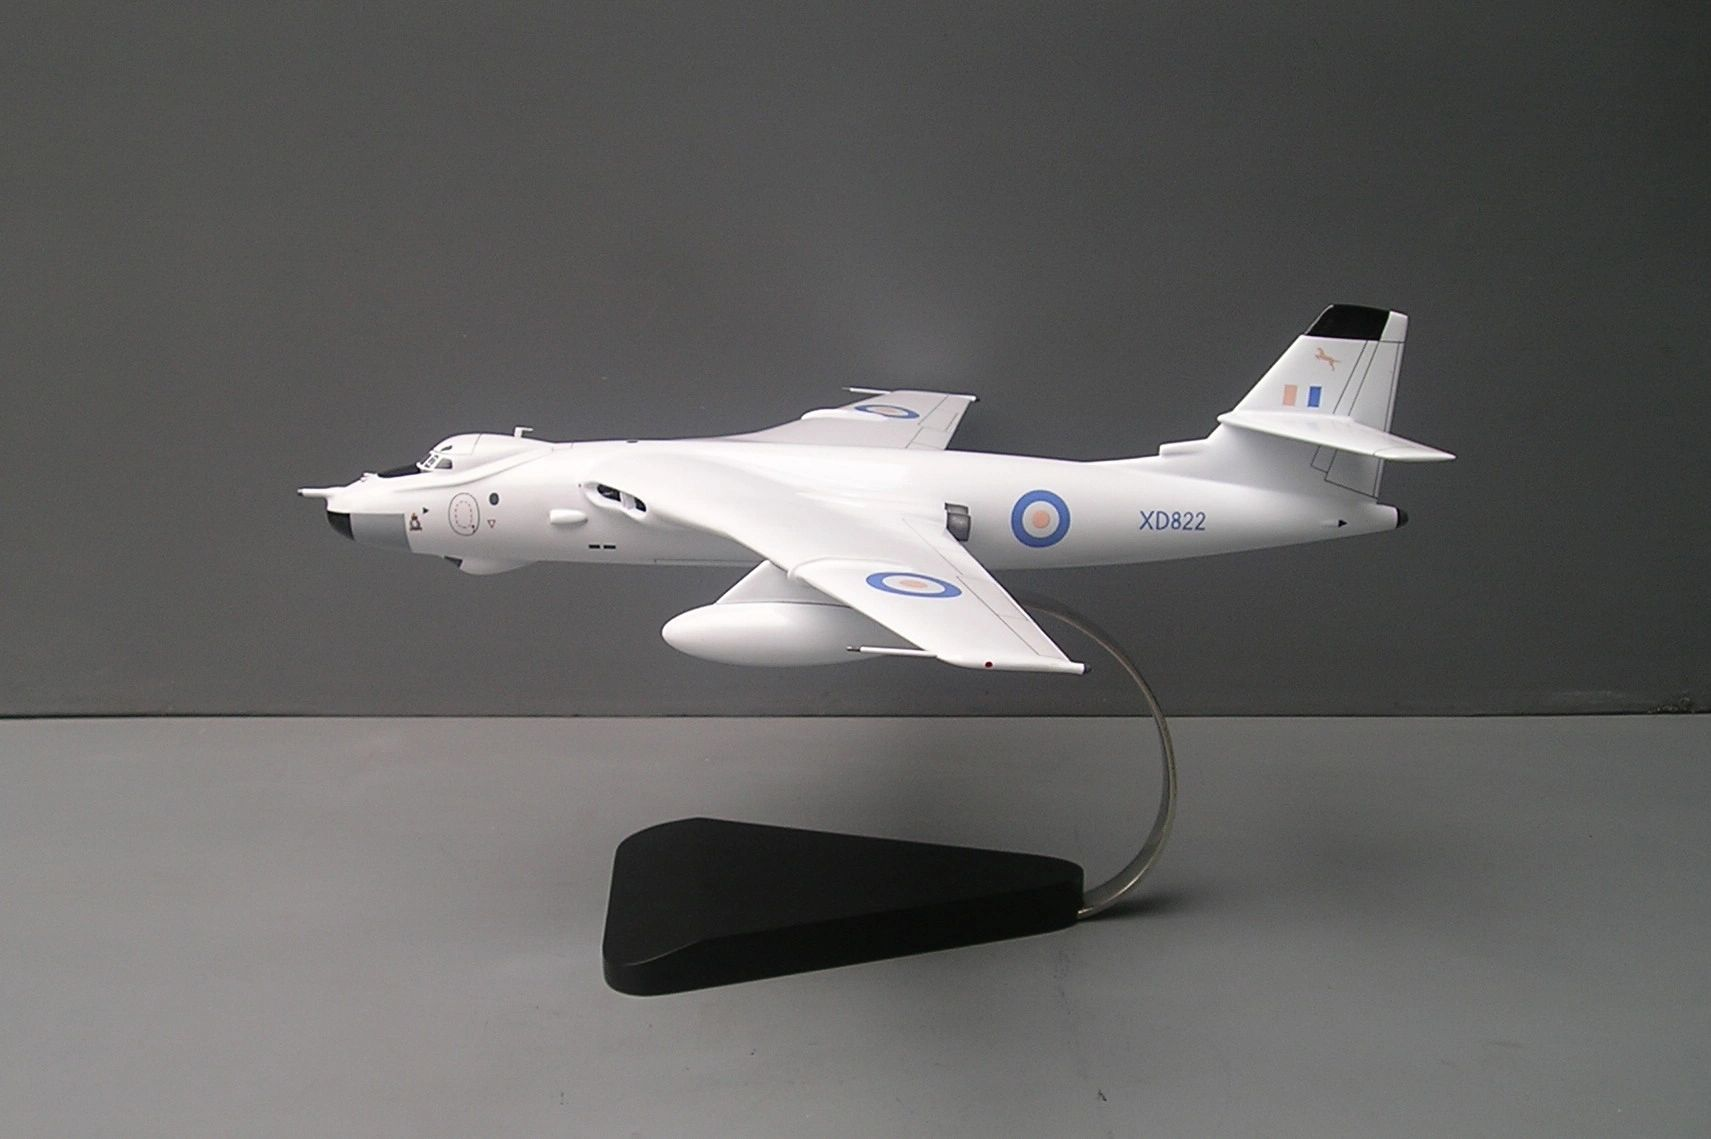 Valiant desktop model